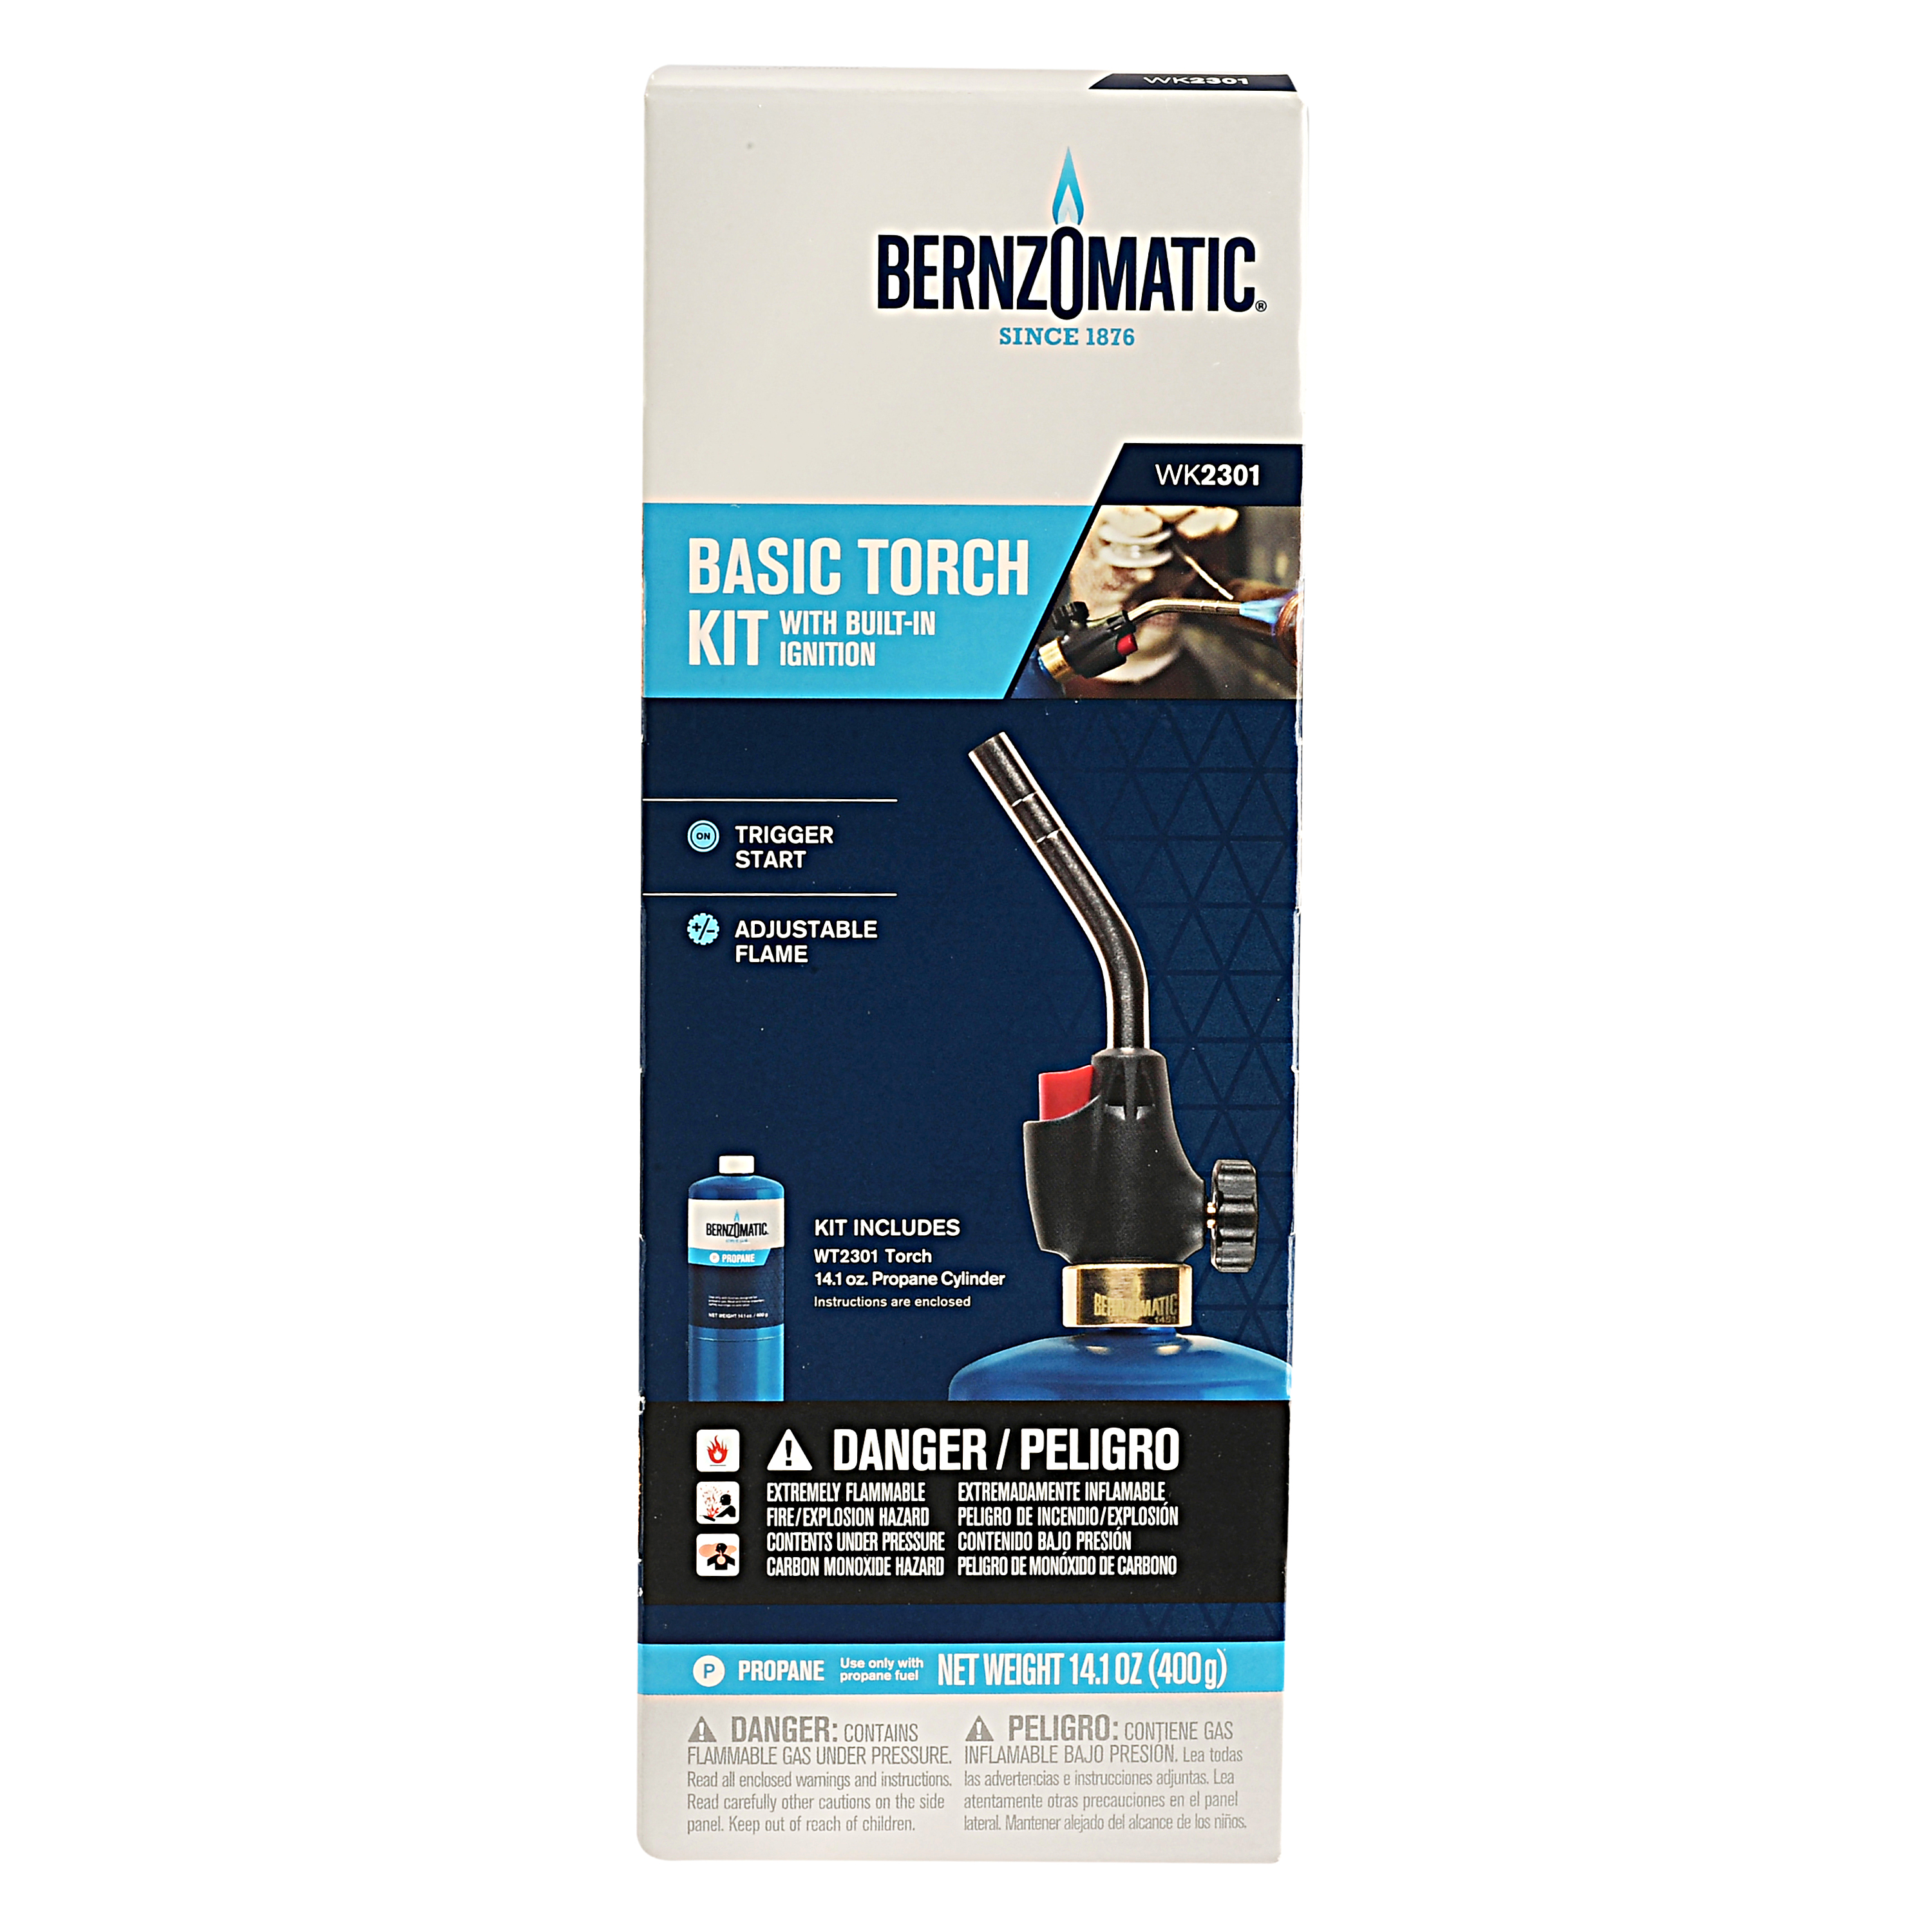 Bernzomatic, Basic Torch Kit, With Built In Ignition by Generic